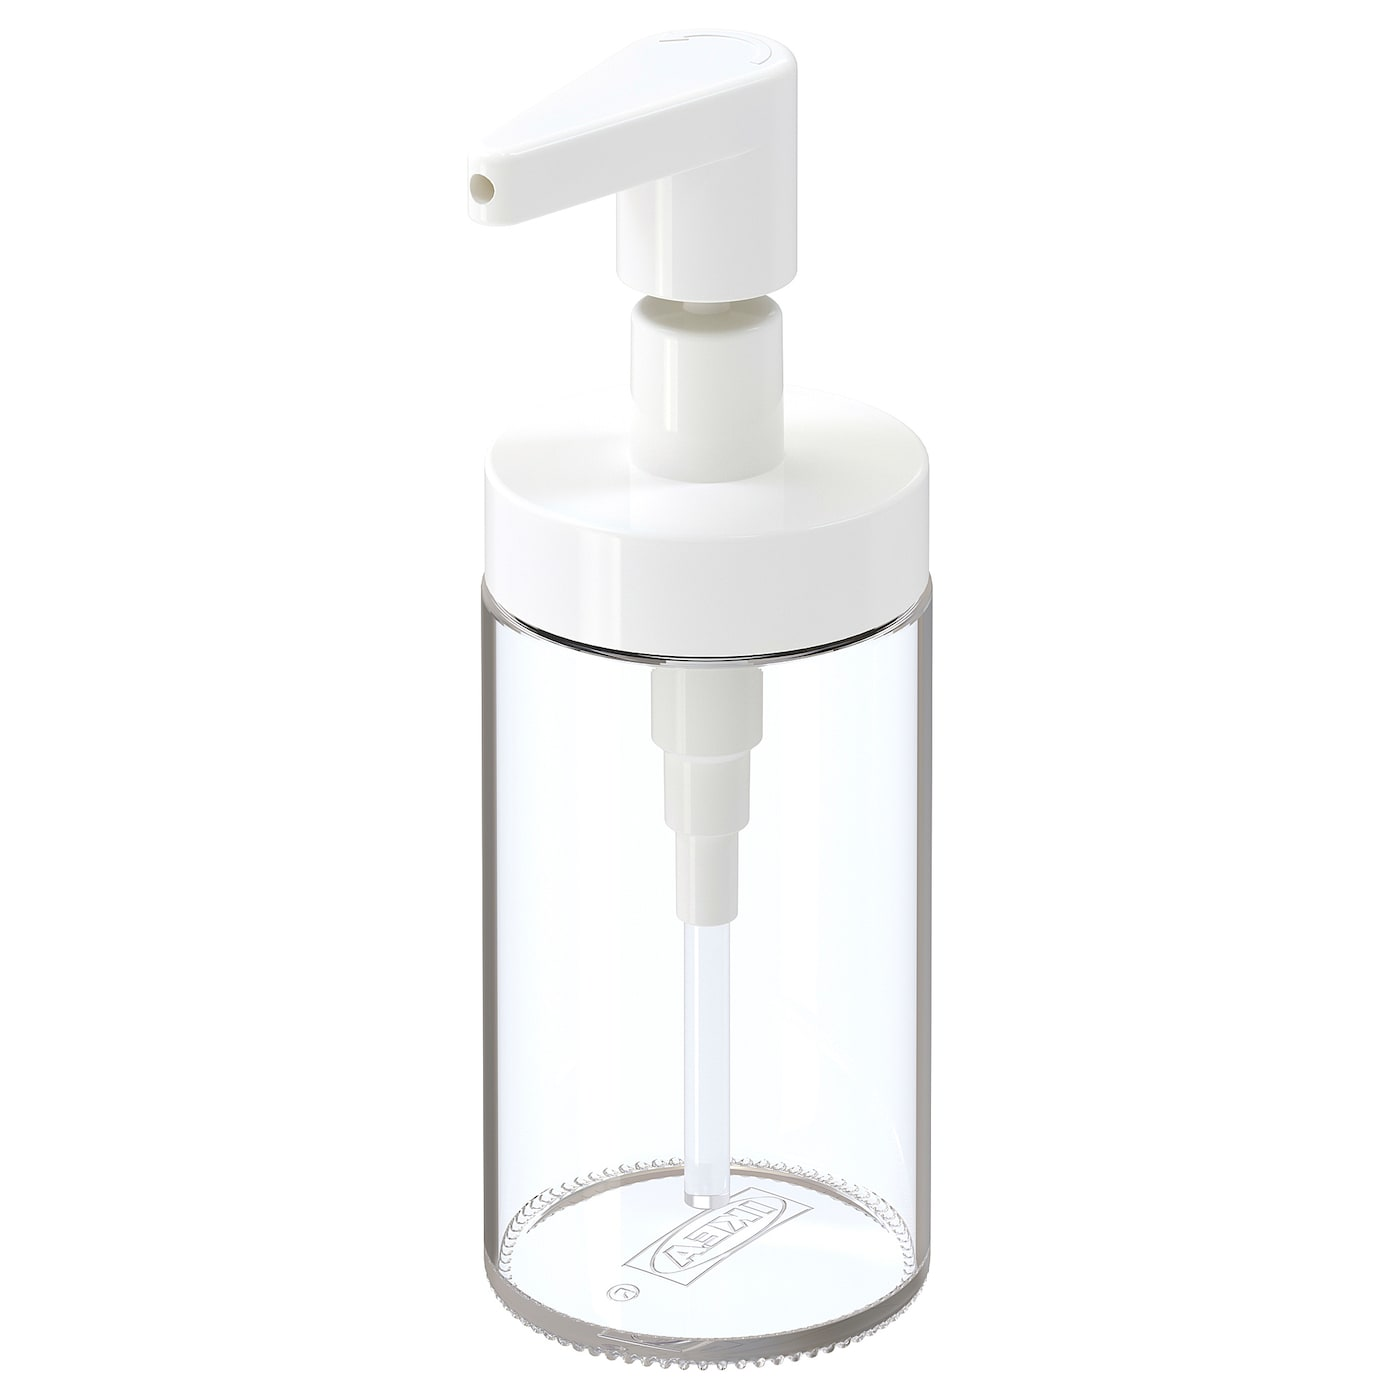 IKEA TACKAN soap dispenser Easy to refill as the dispenser has a wide opening.